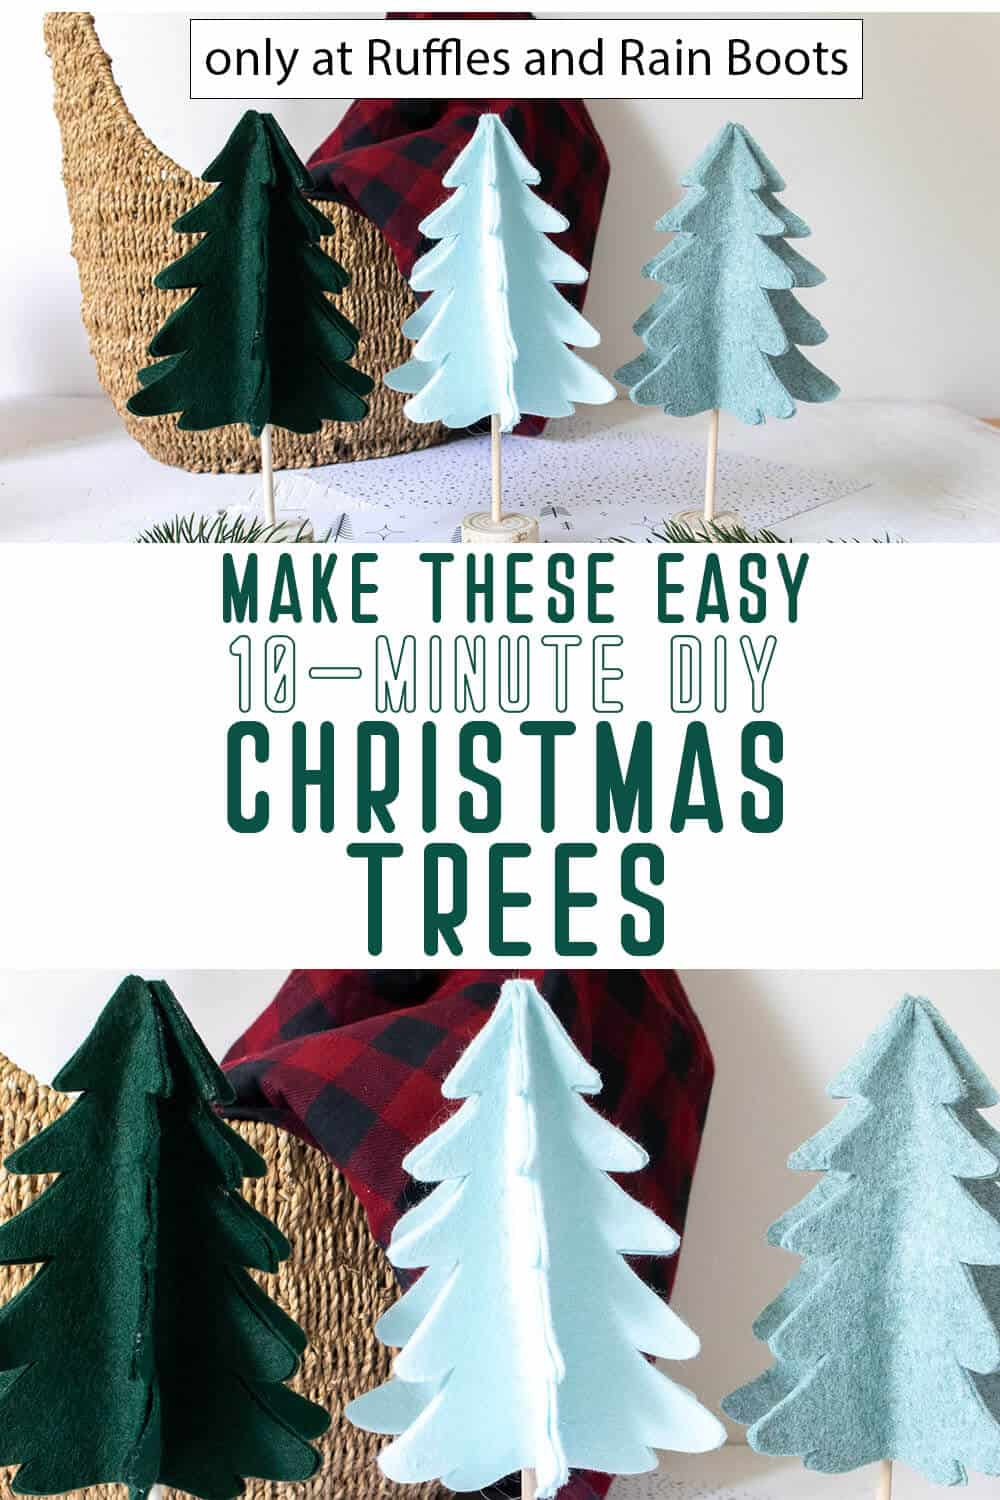 photo collage of scandinavian christmas decor christmas trees with text which reads make these easy 10-minute diy christmas trees